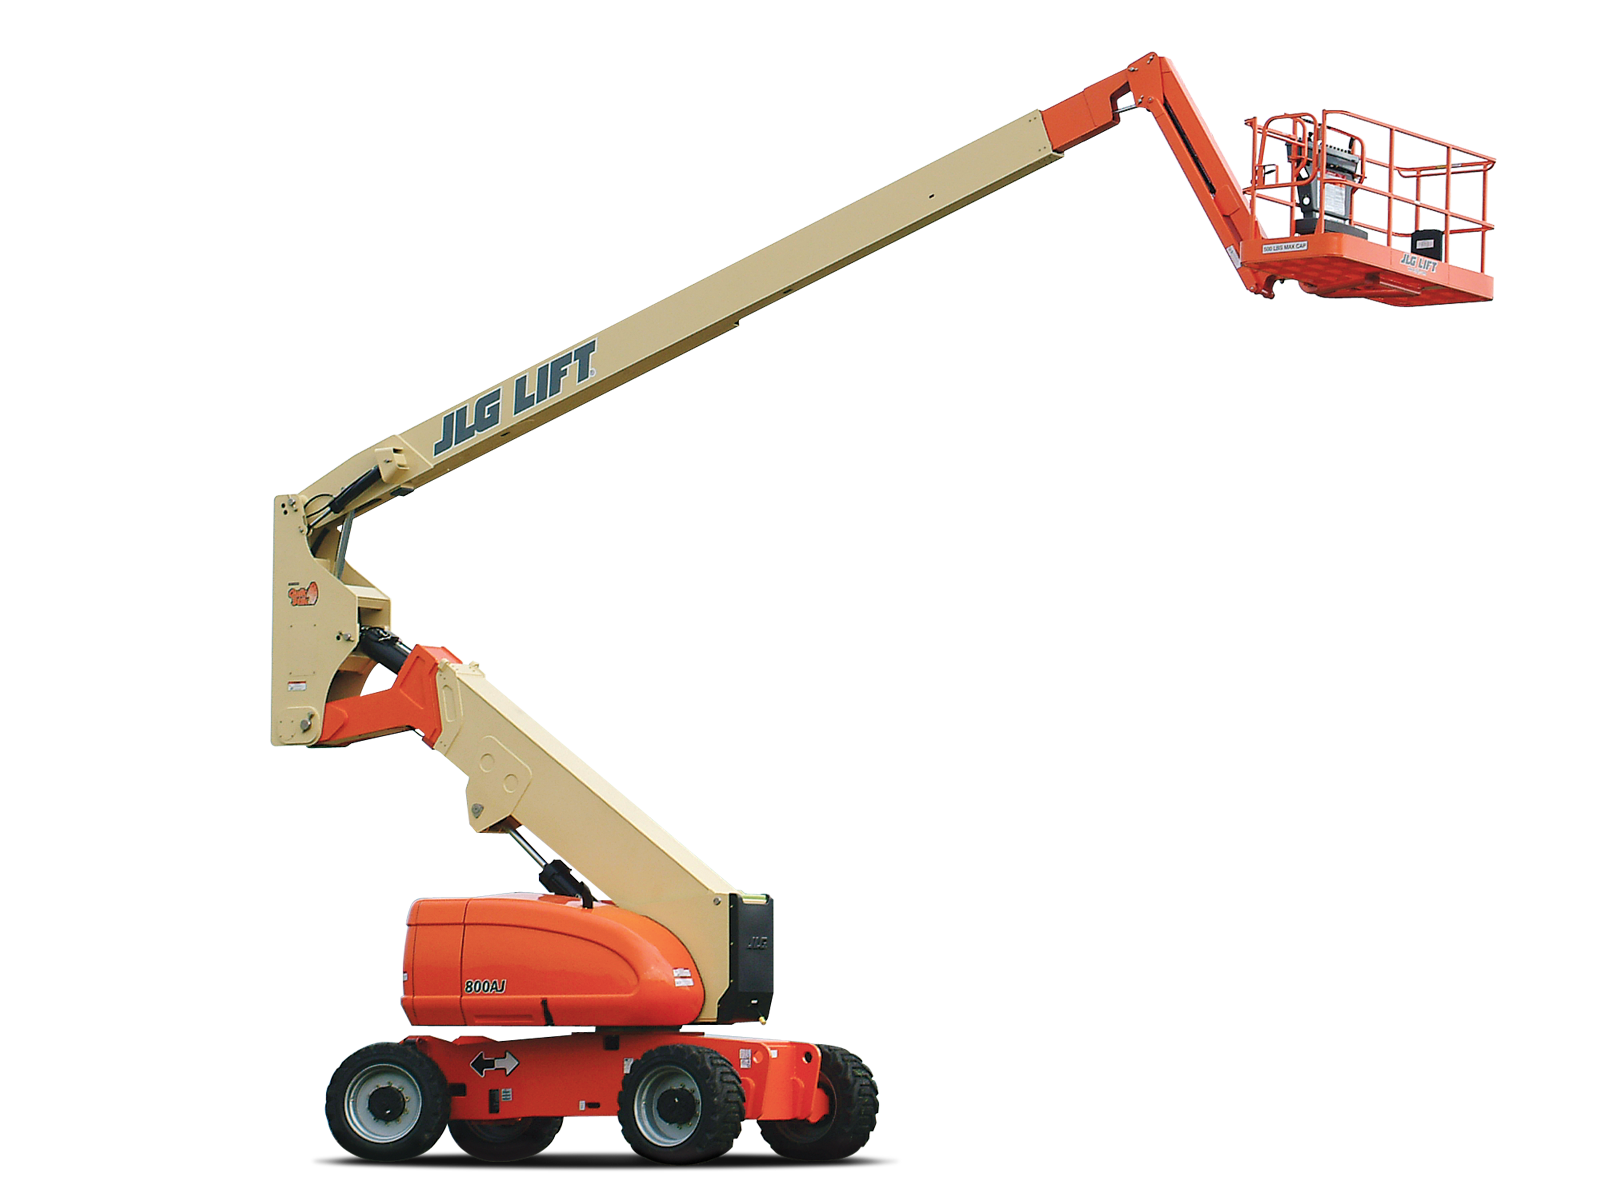 800AJ - 26.46M (86.81Ft) Diesel Articulating Boom Lift